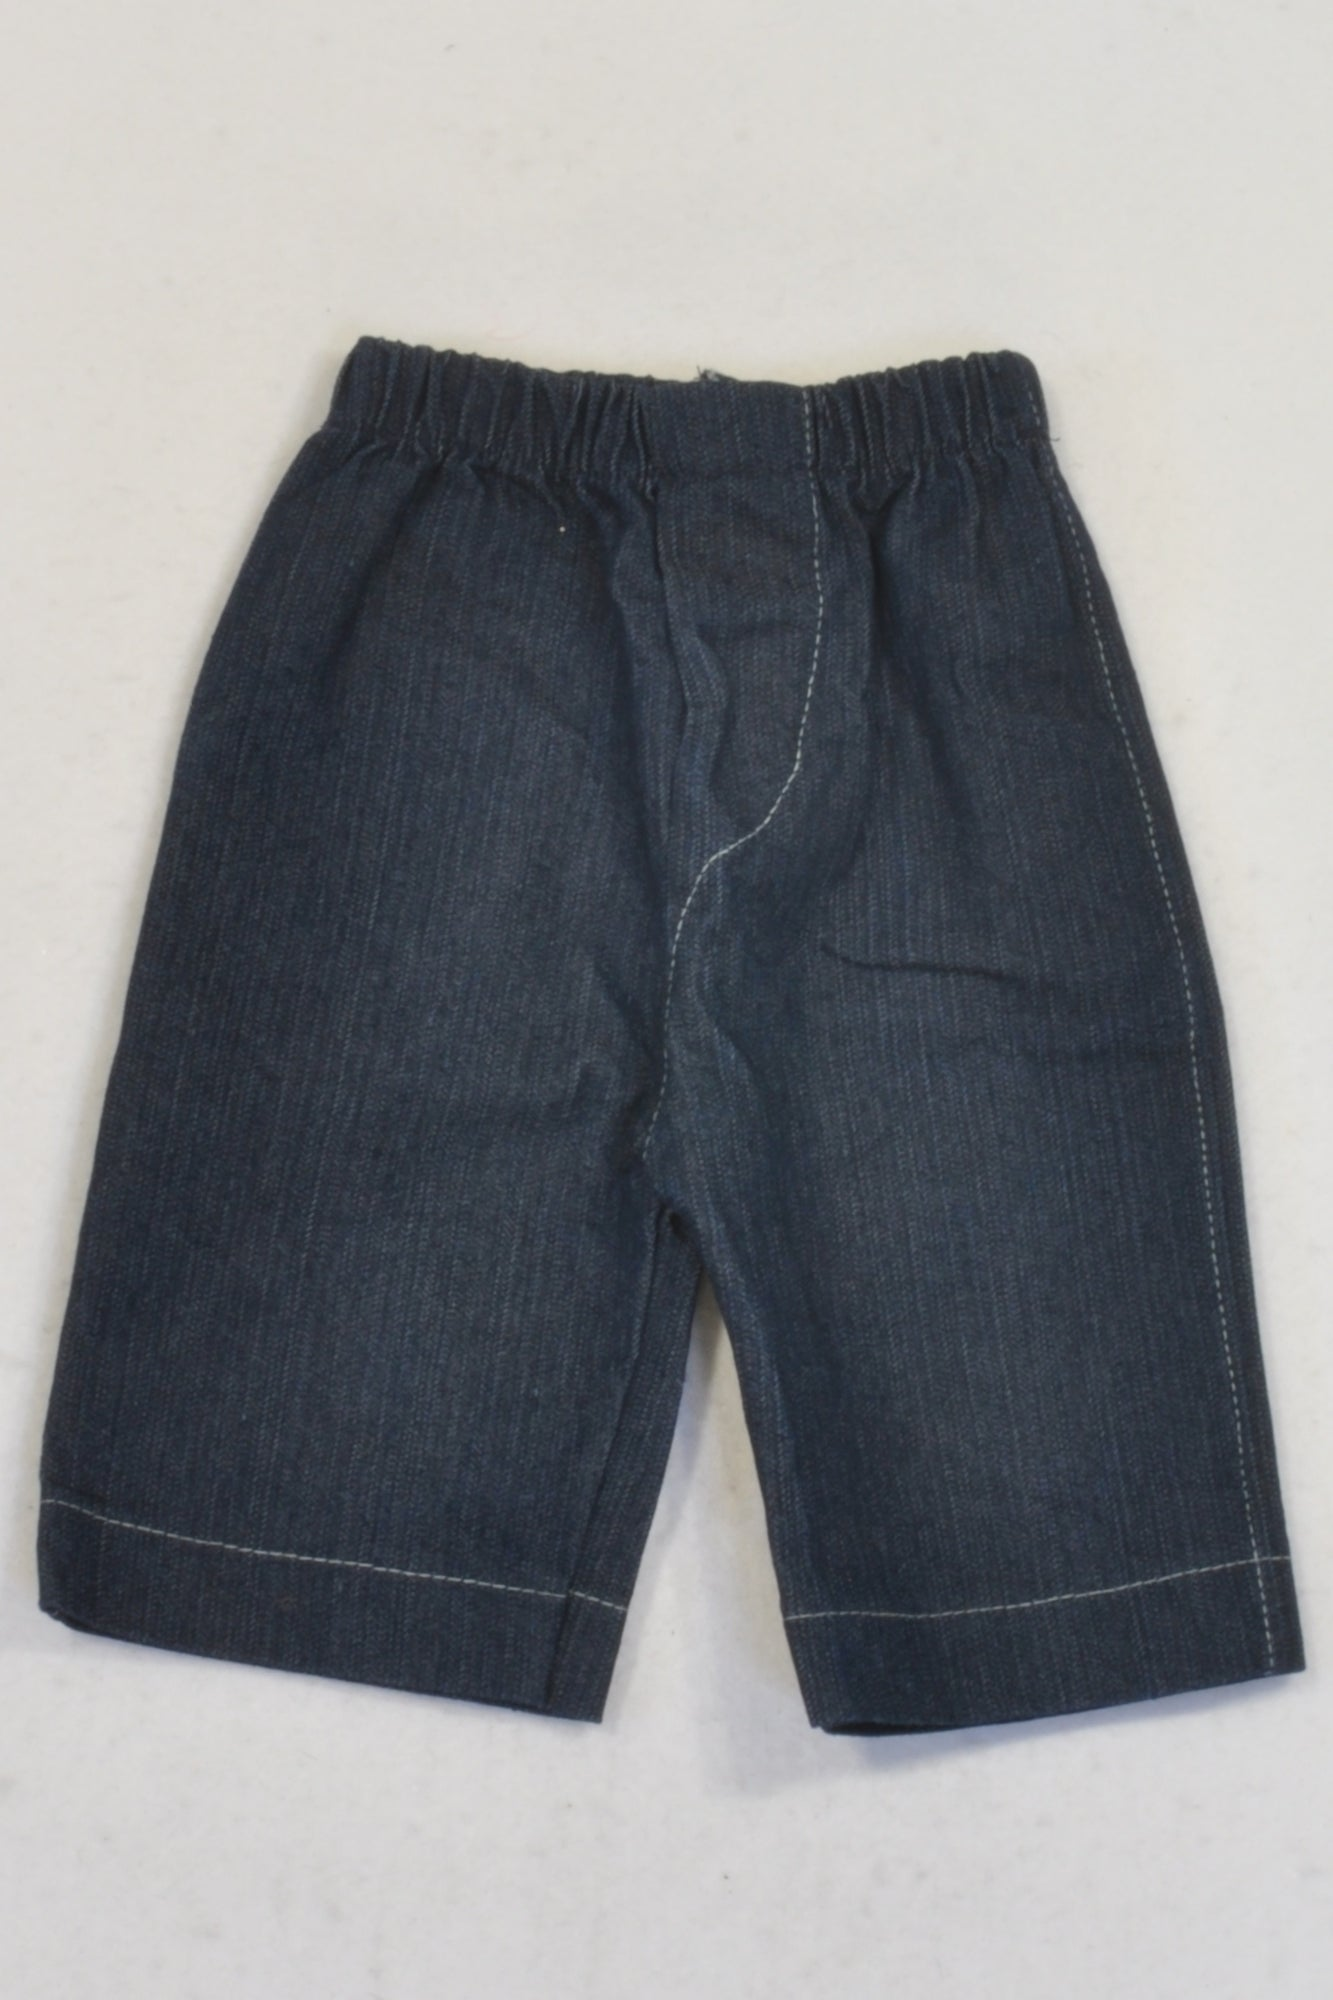 New Unknown Brand Dark Denim Wide Leg Jeans Girls 0-3 months